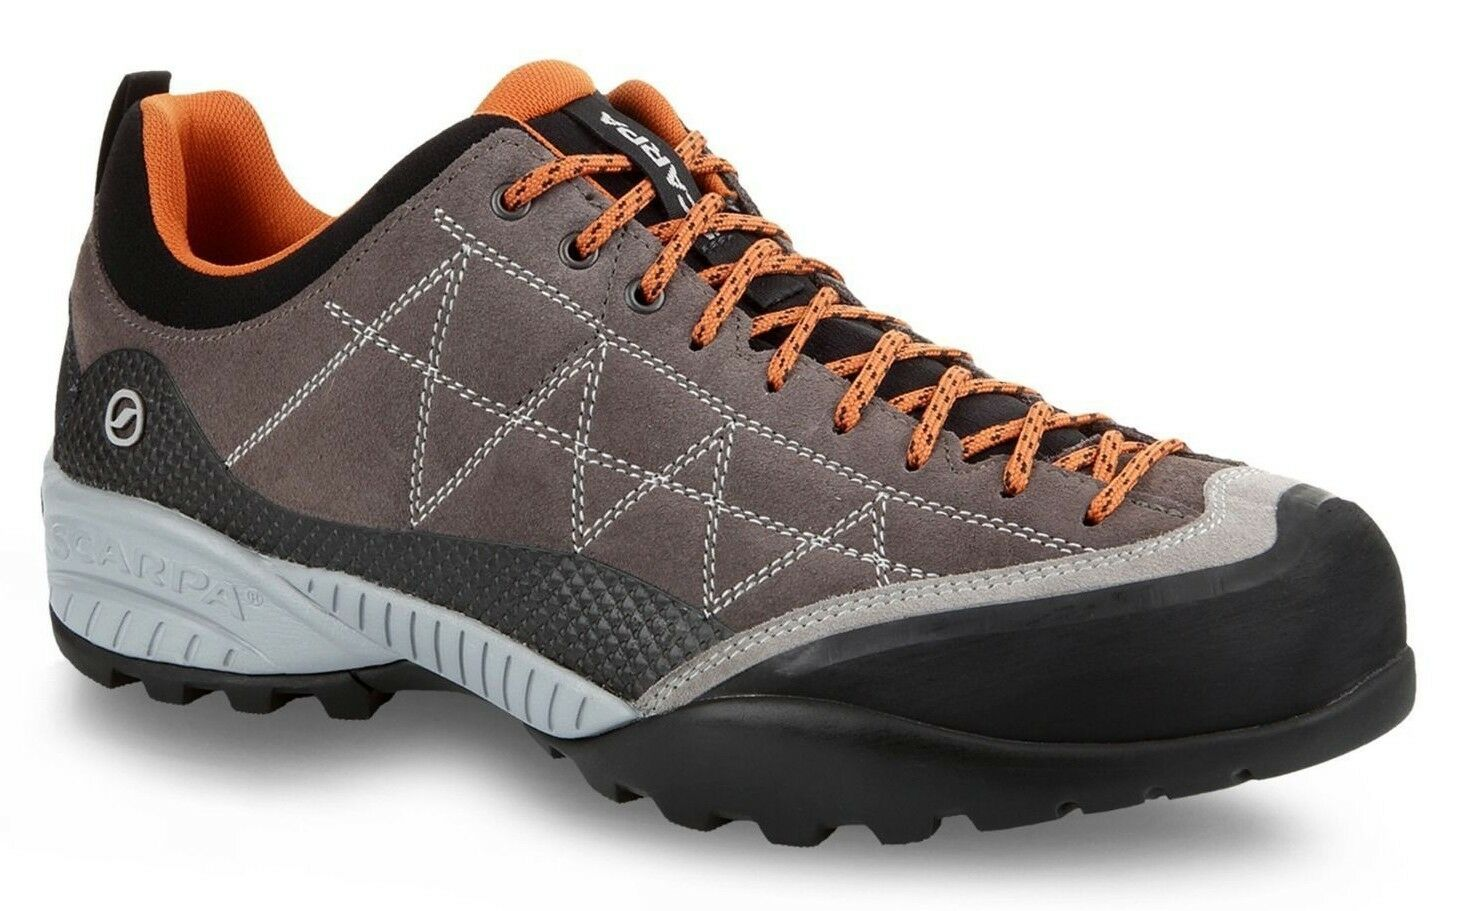 Scarpa Zen Pro 72530/350 Charcoal/Tonic Suede S Tech Vibram Vibram Vibram Light Hiking Schuhes 900e9f